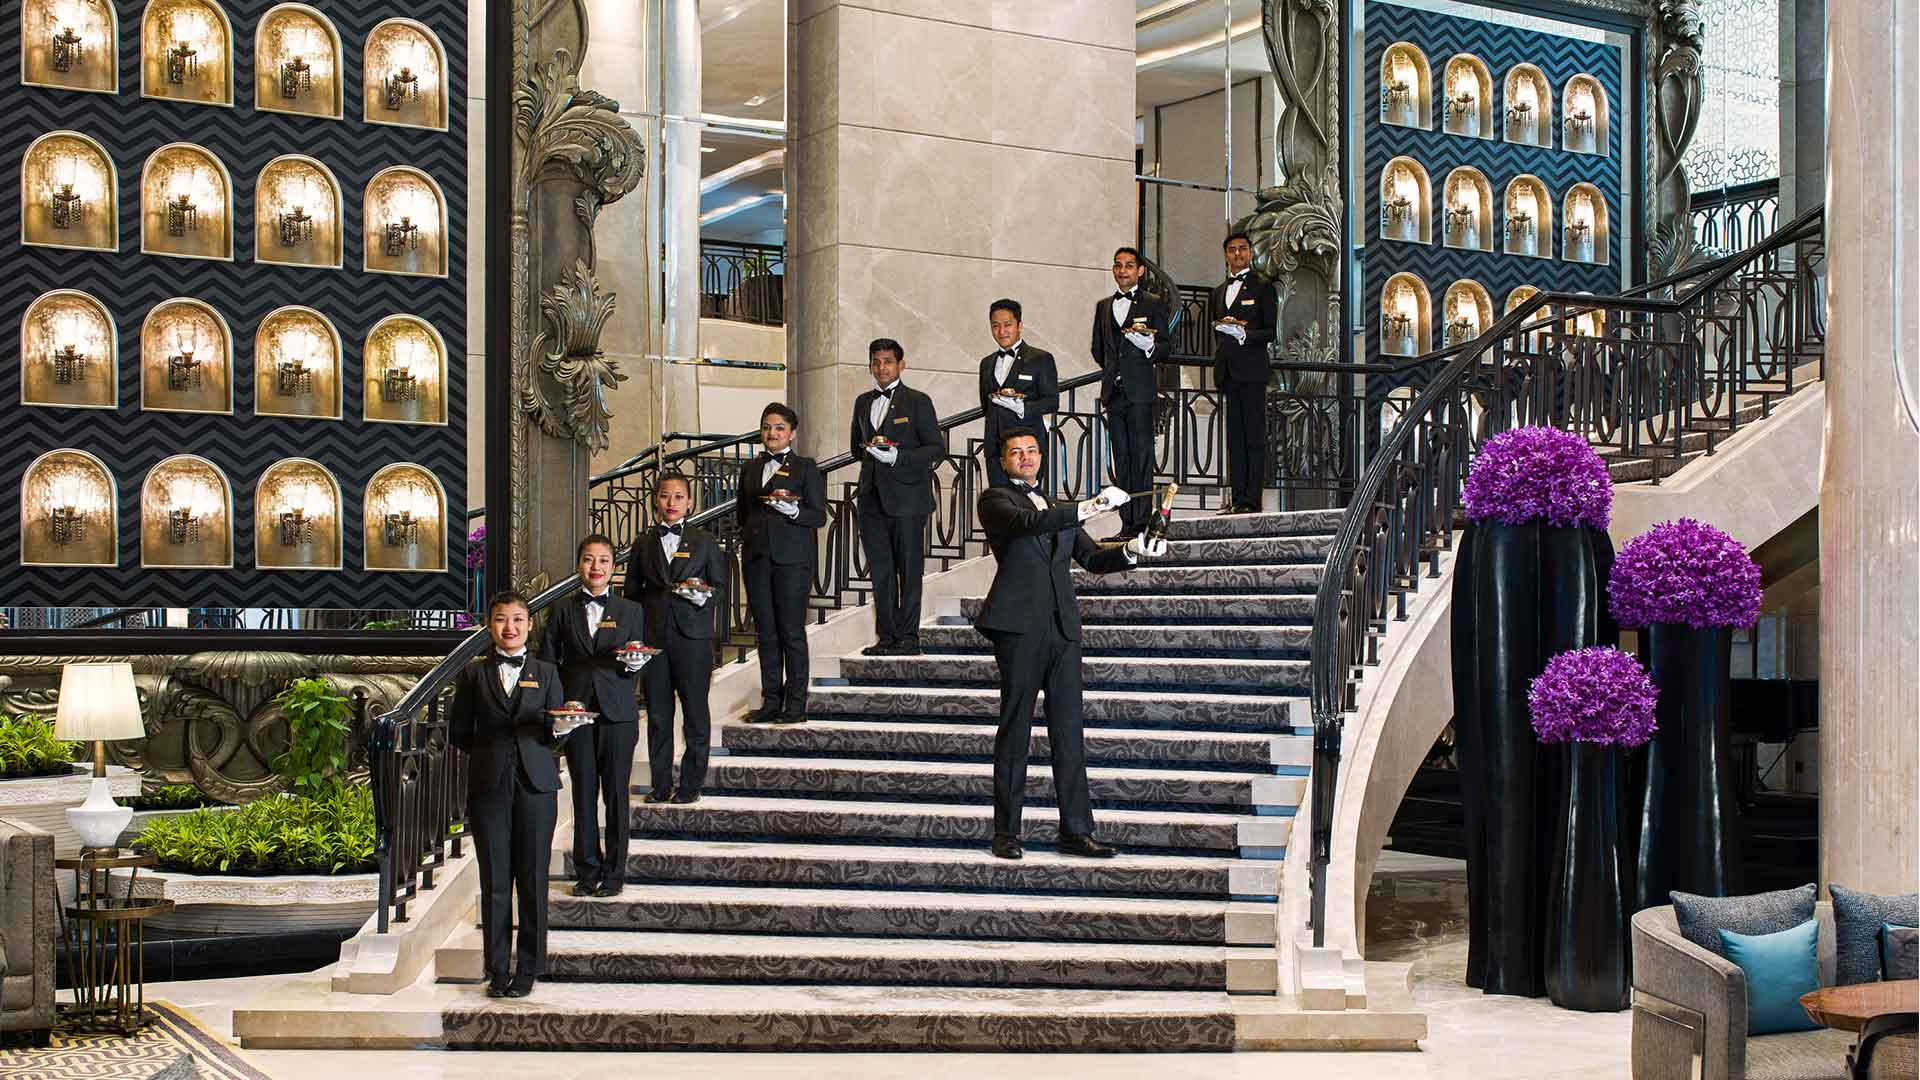 The St. Regis Evening Champagne Sabering